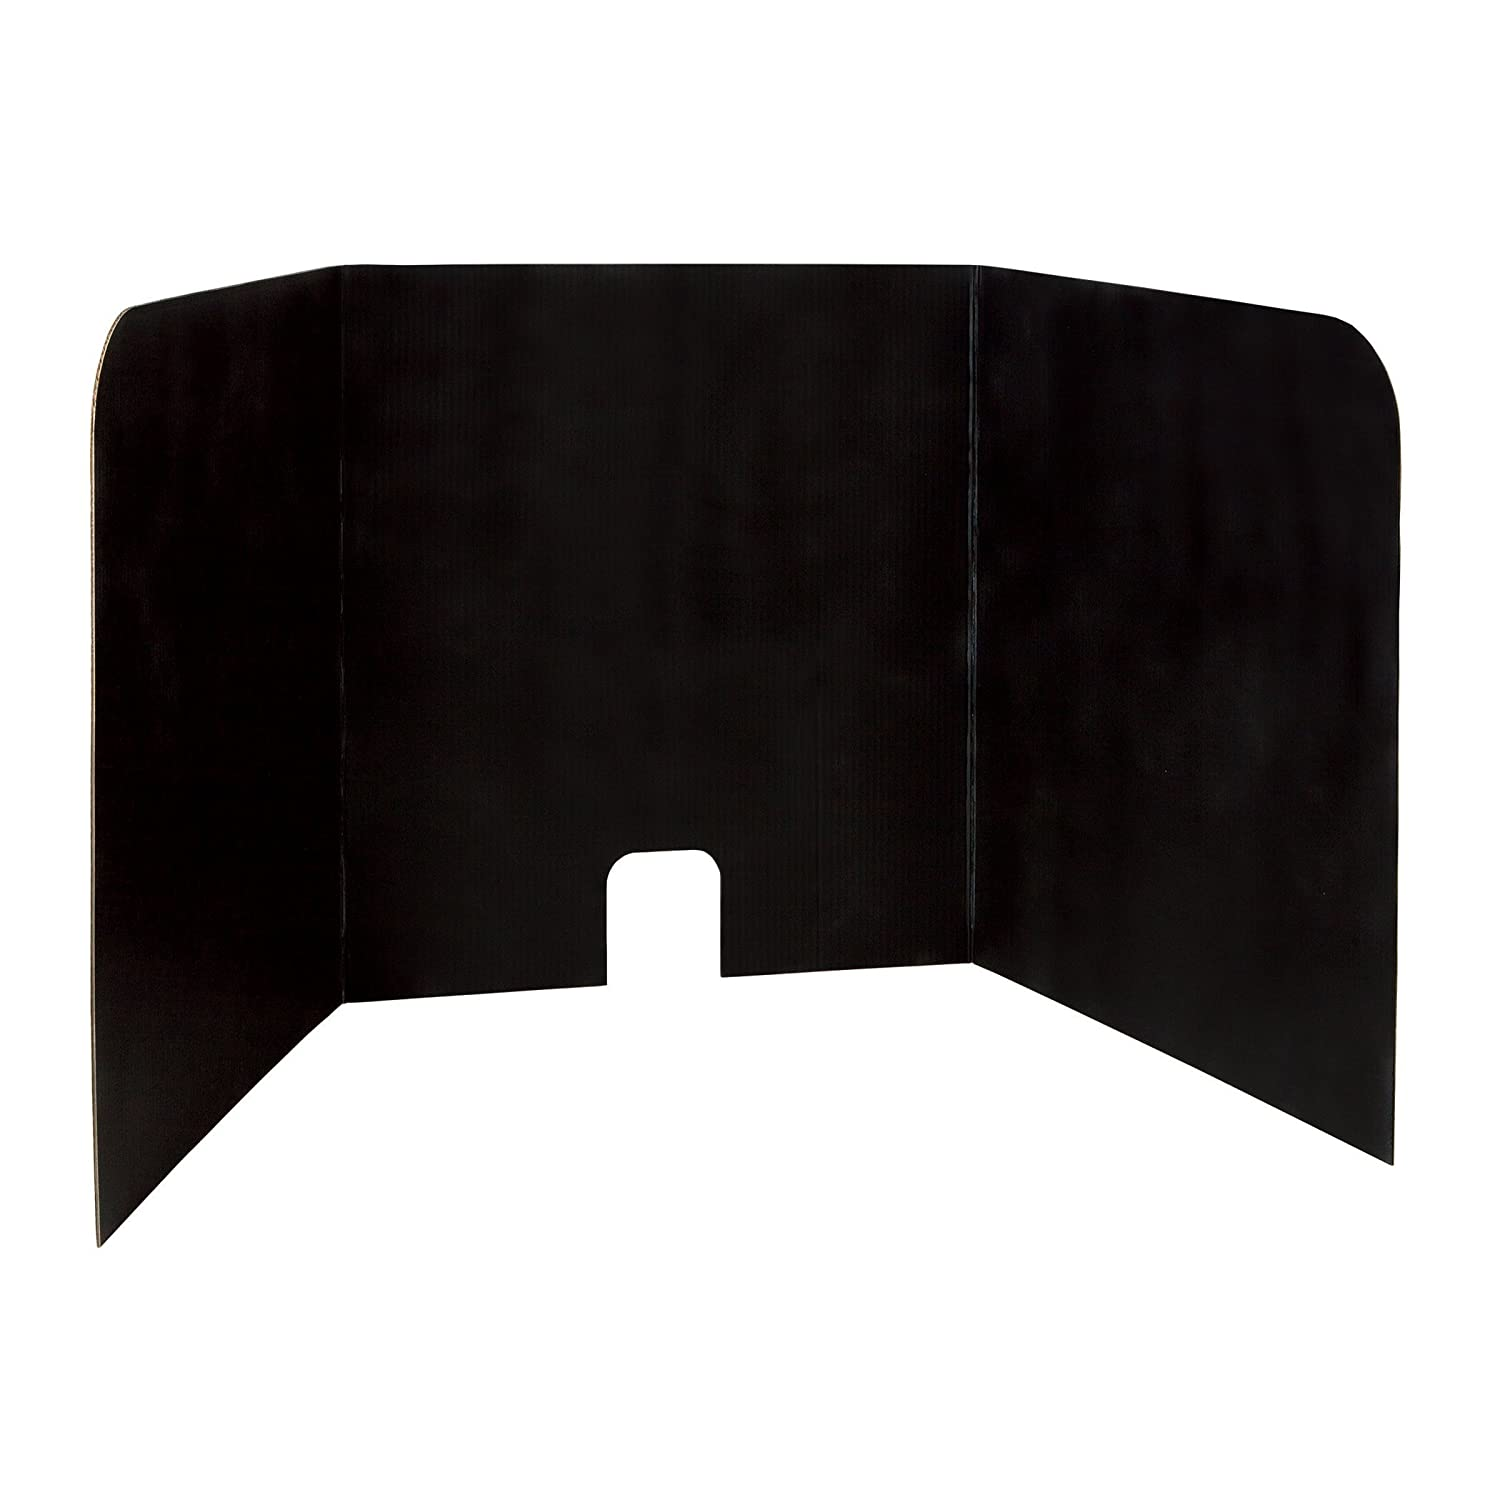 """Pacon PAC3795 Computer Lab Privacy Board, 22""""H x 22""""W x 20""""D, Black, Pack of 4"""